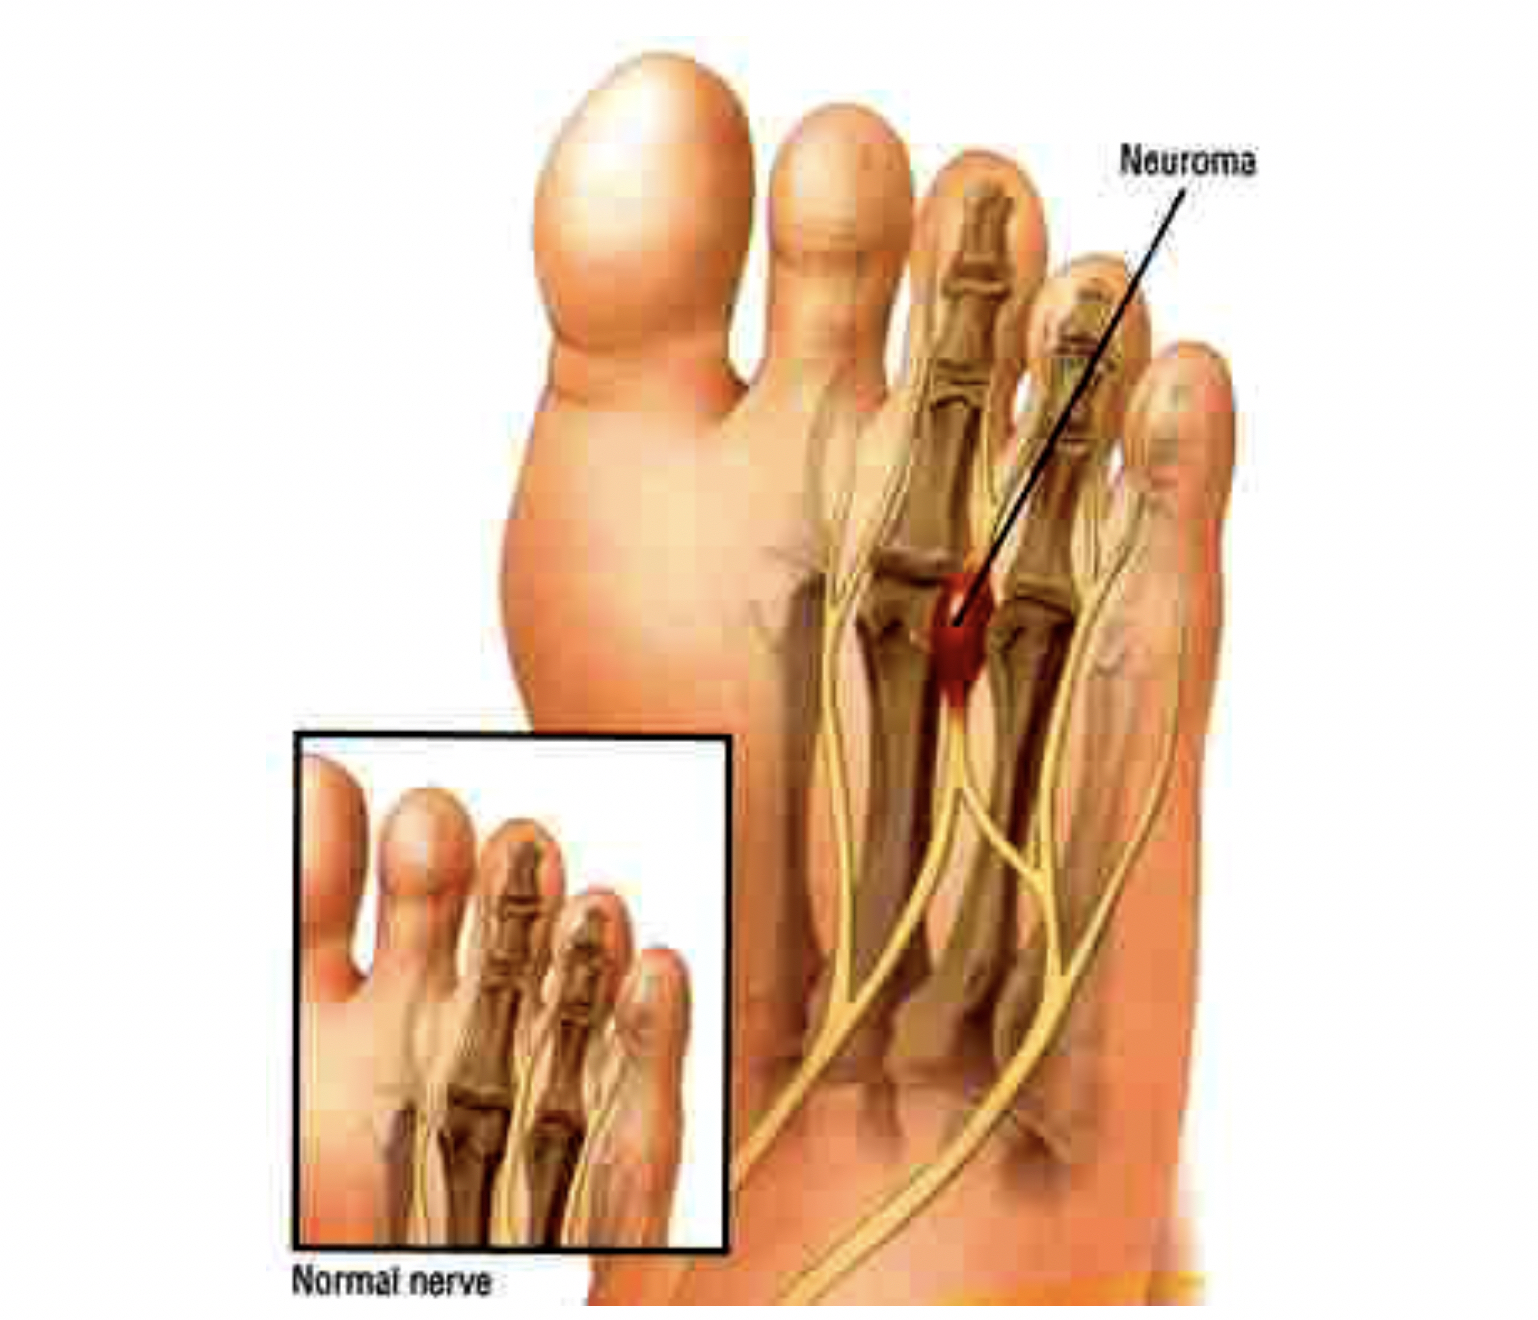 Morton's neuroma is a thickening of one of the sensory nerves in the forefoot